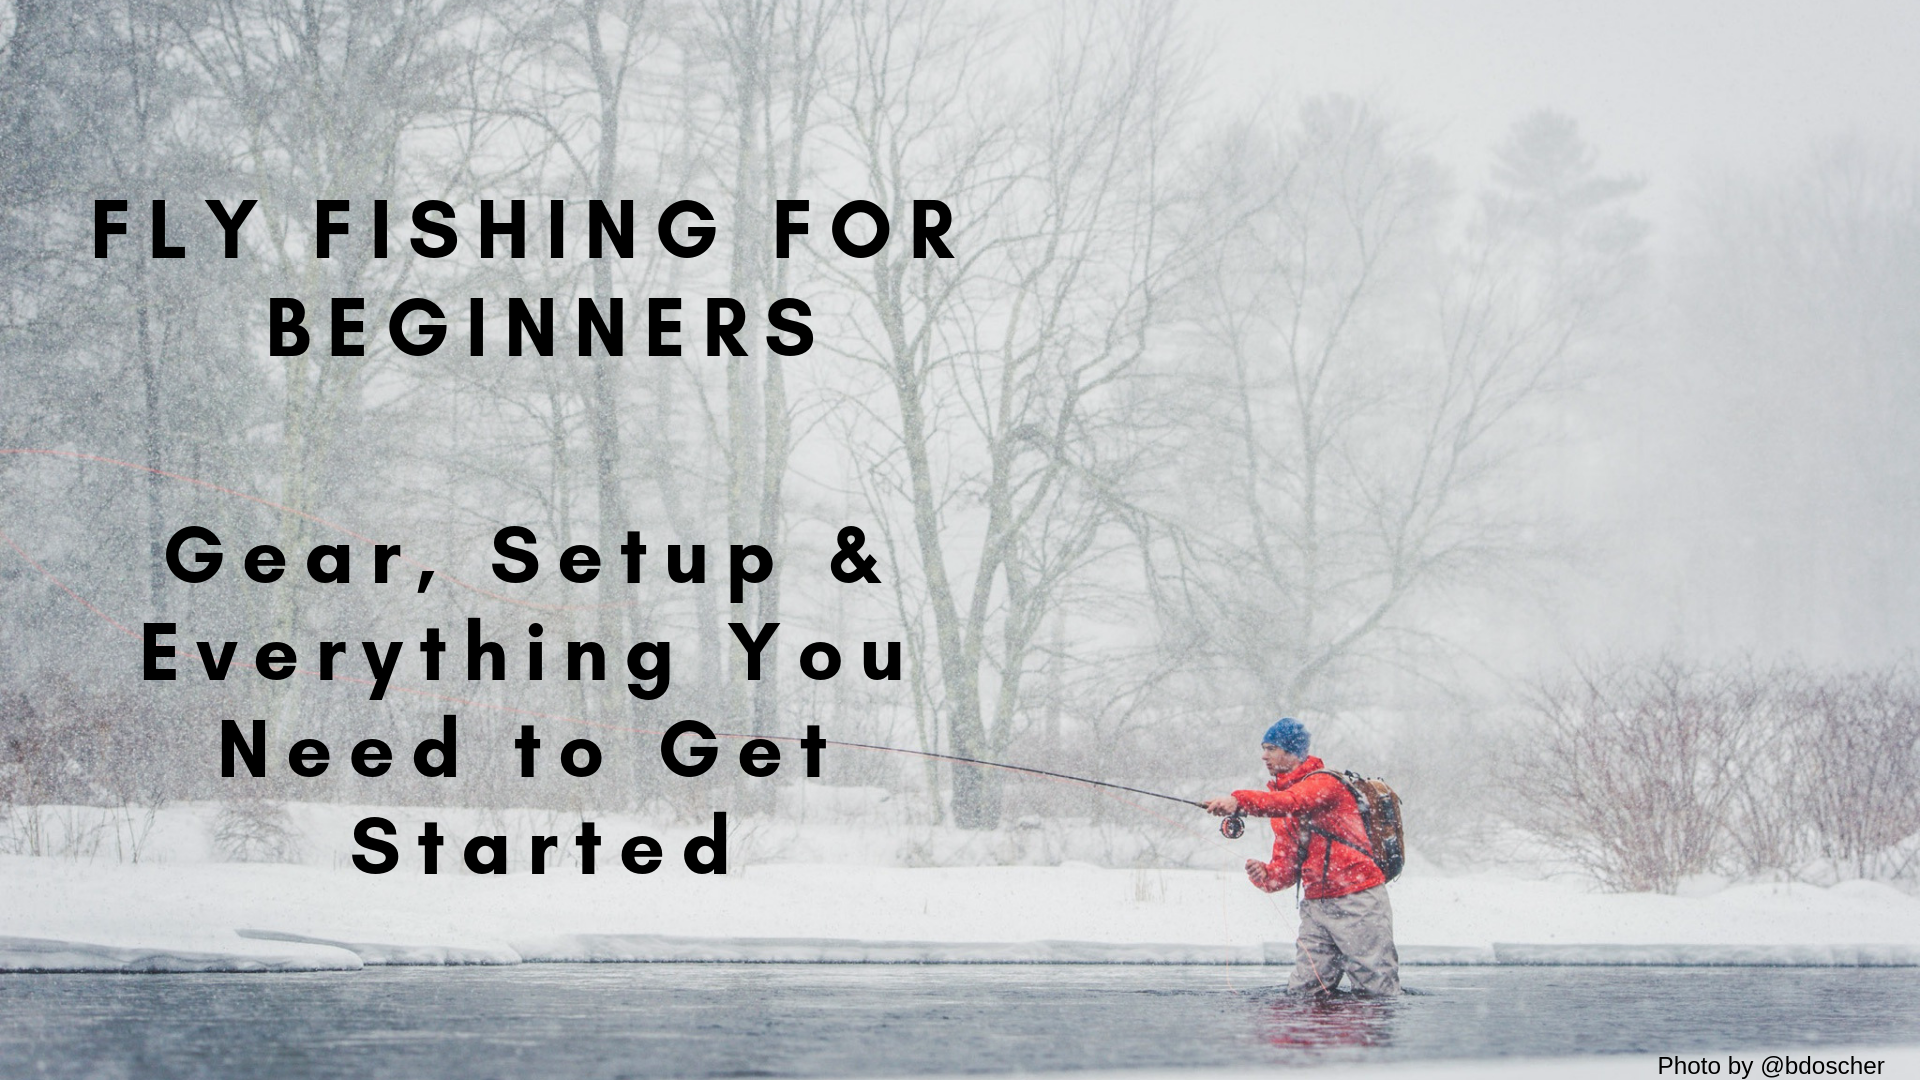 Fly Fishing For Beginners – Gear Needs, Setup & Everything You Need to Get Started